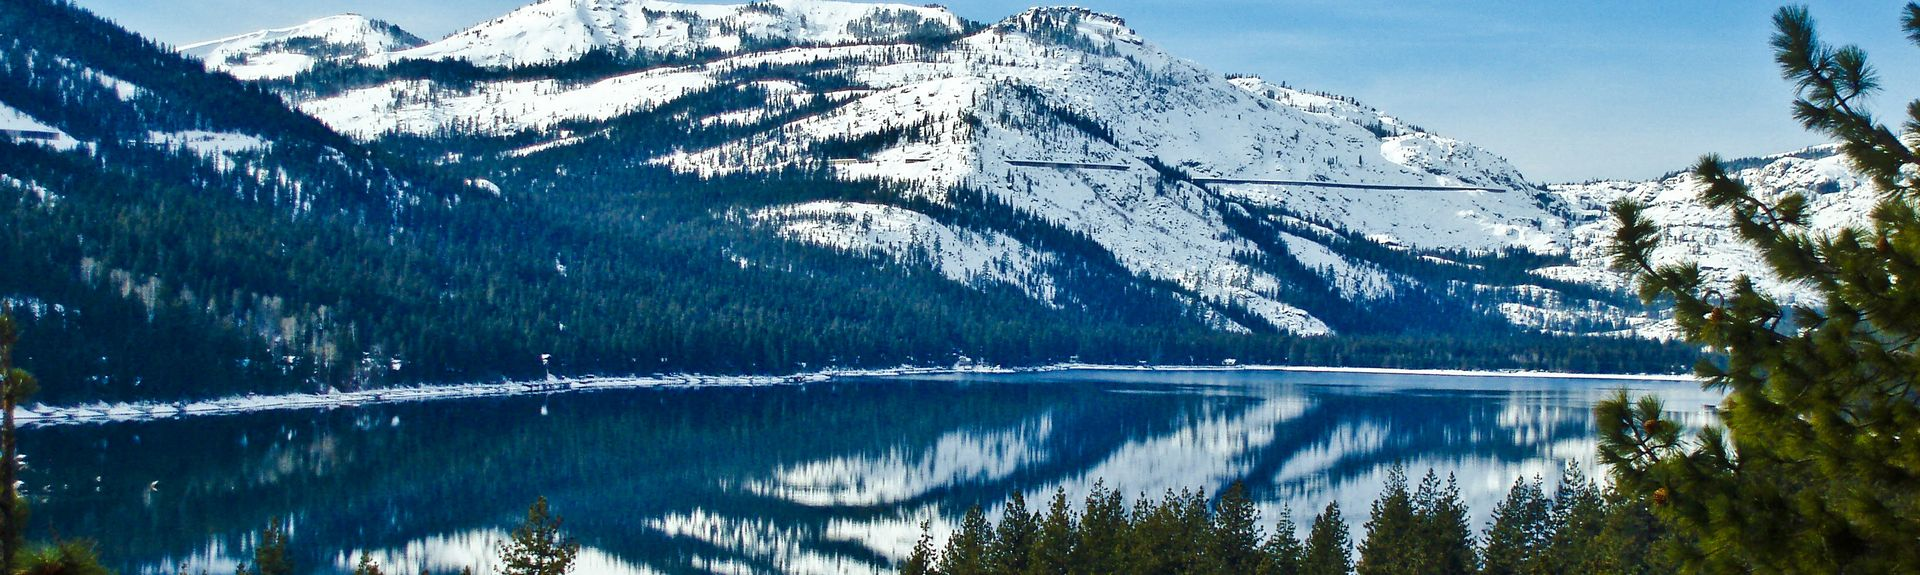 Donner Lake Woods, Truckee, California, United States of America